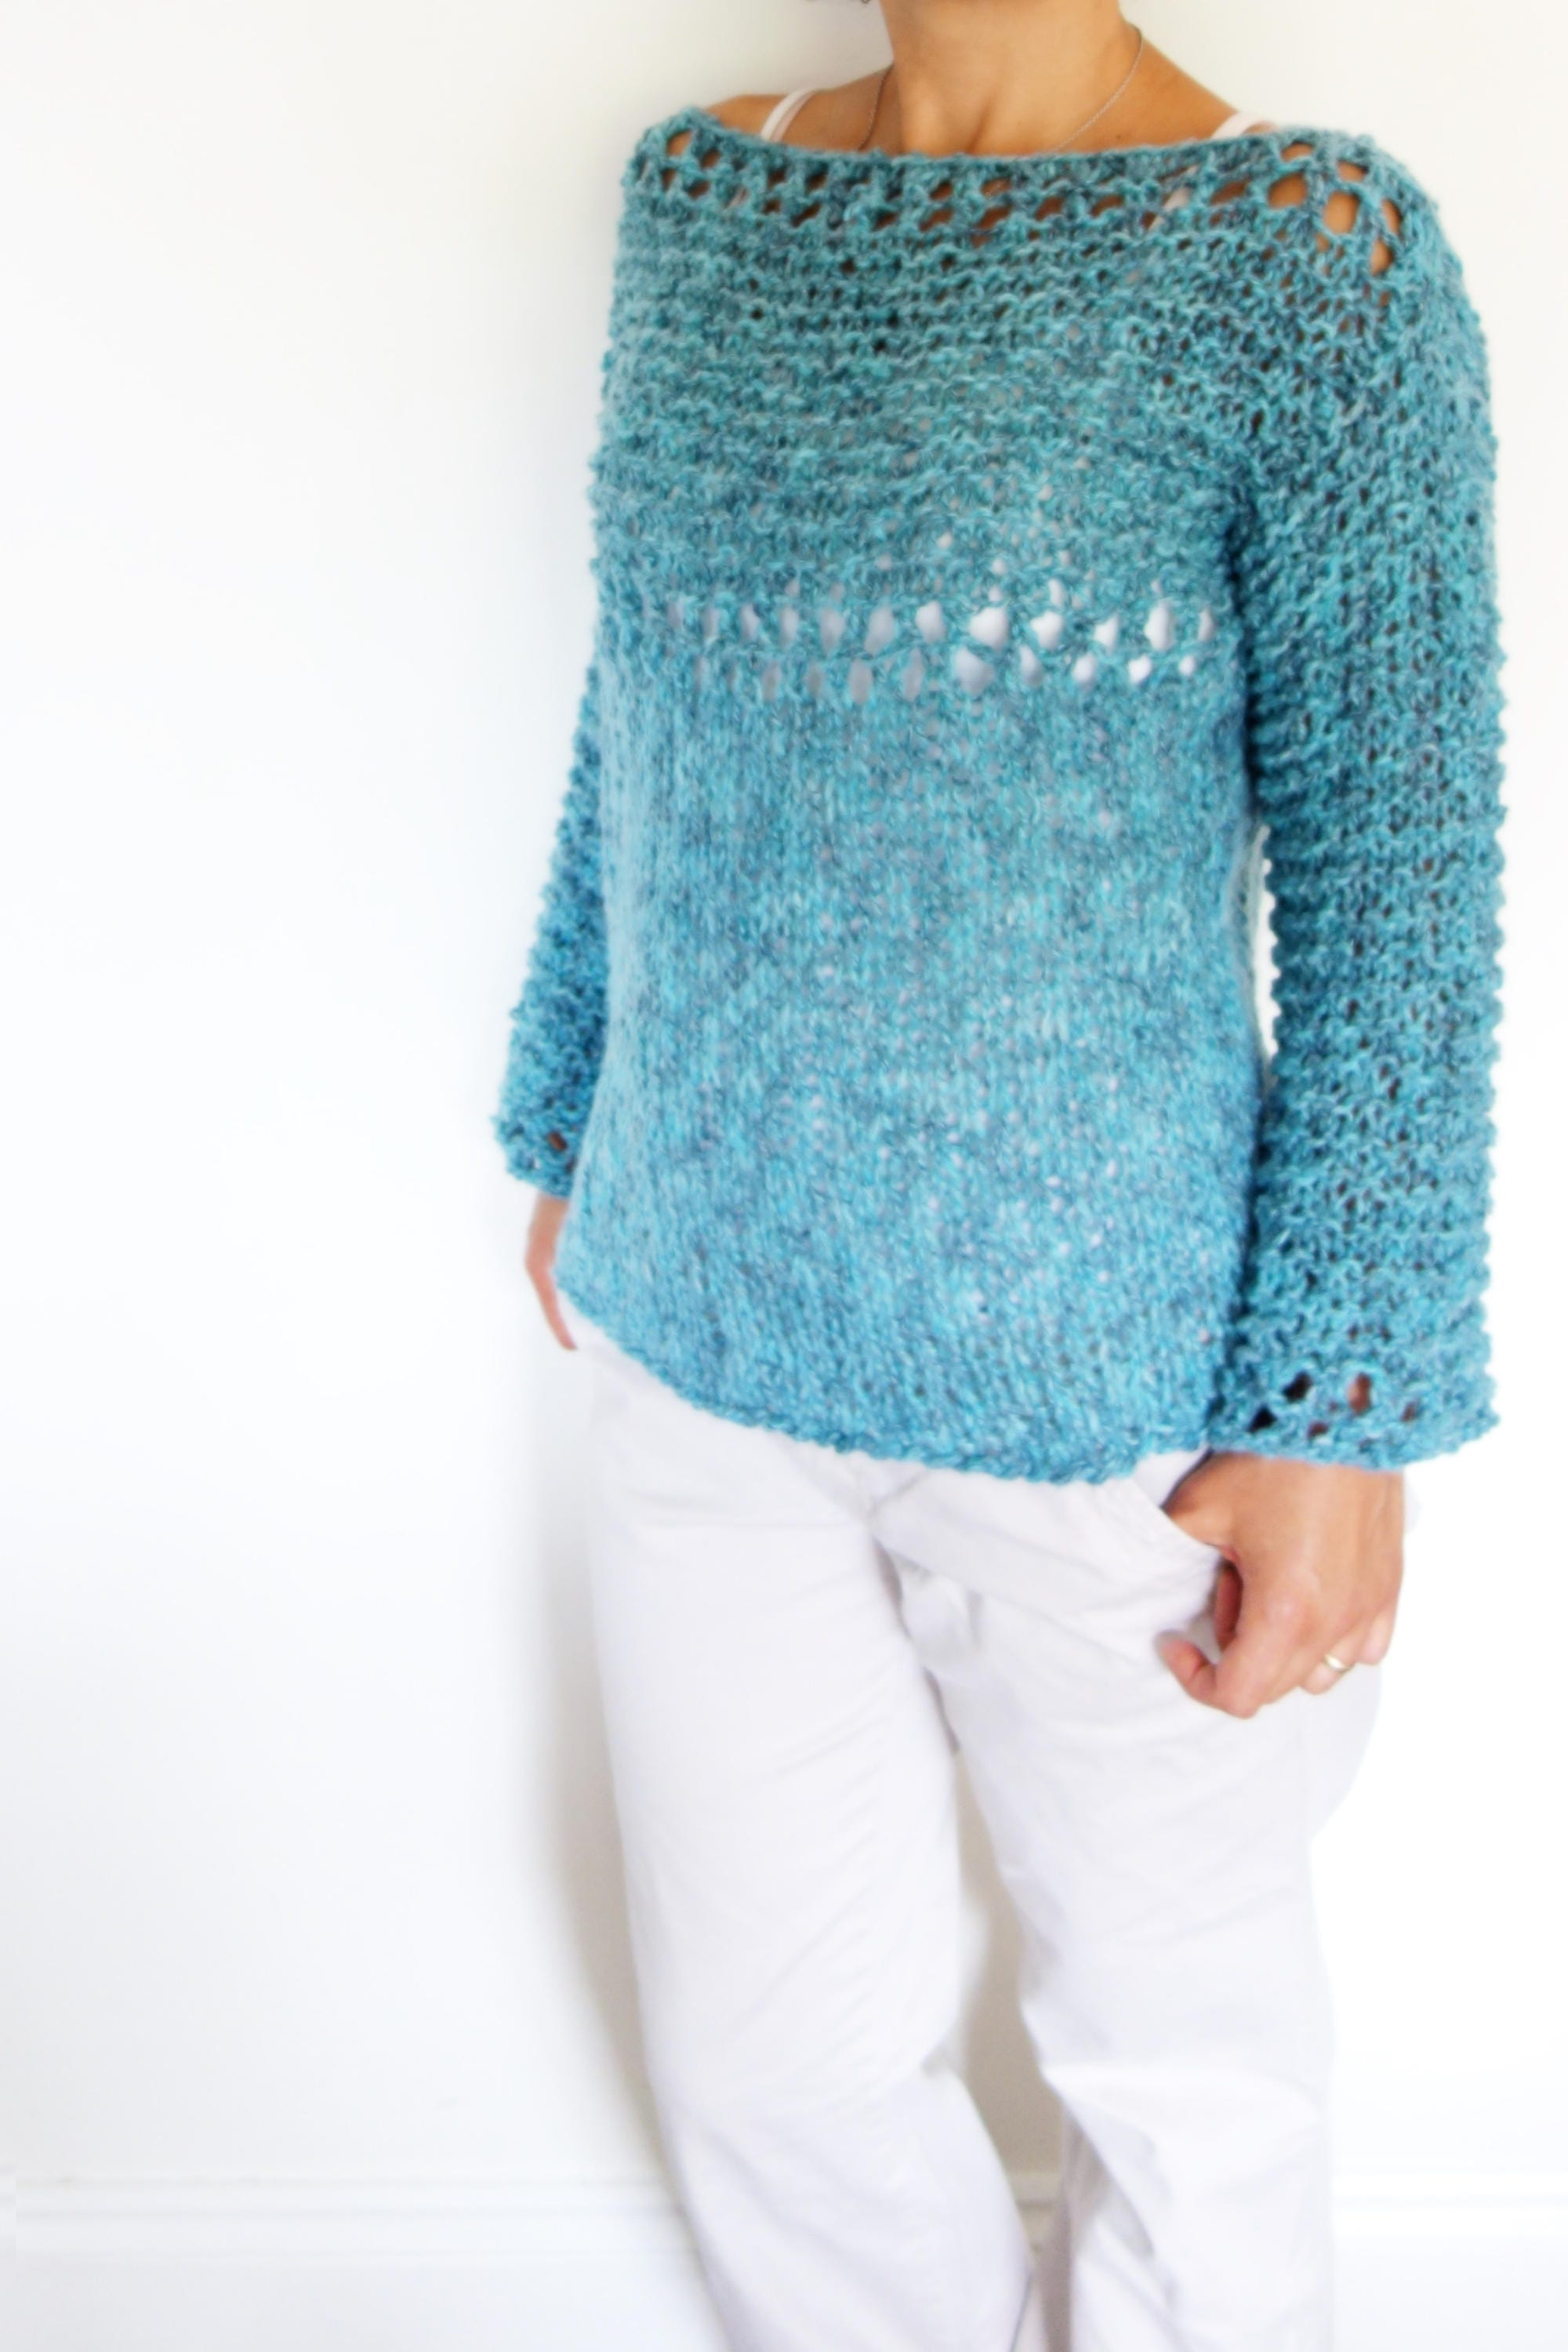 Sweater knitting pattern lagoonloose knit sweater open knit this is a digital file bankloansurffo Choice Image